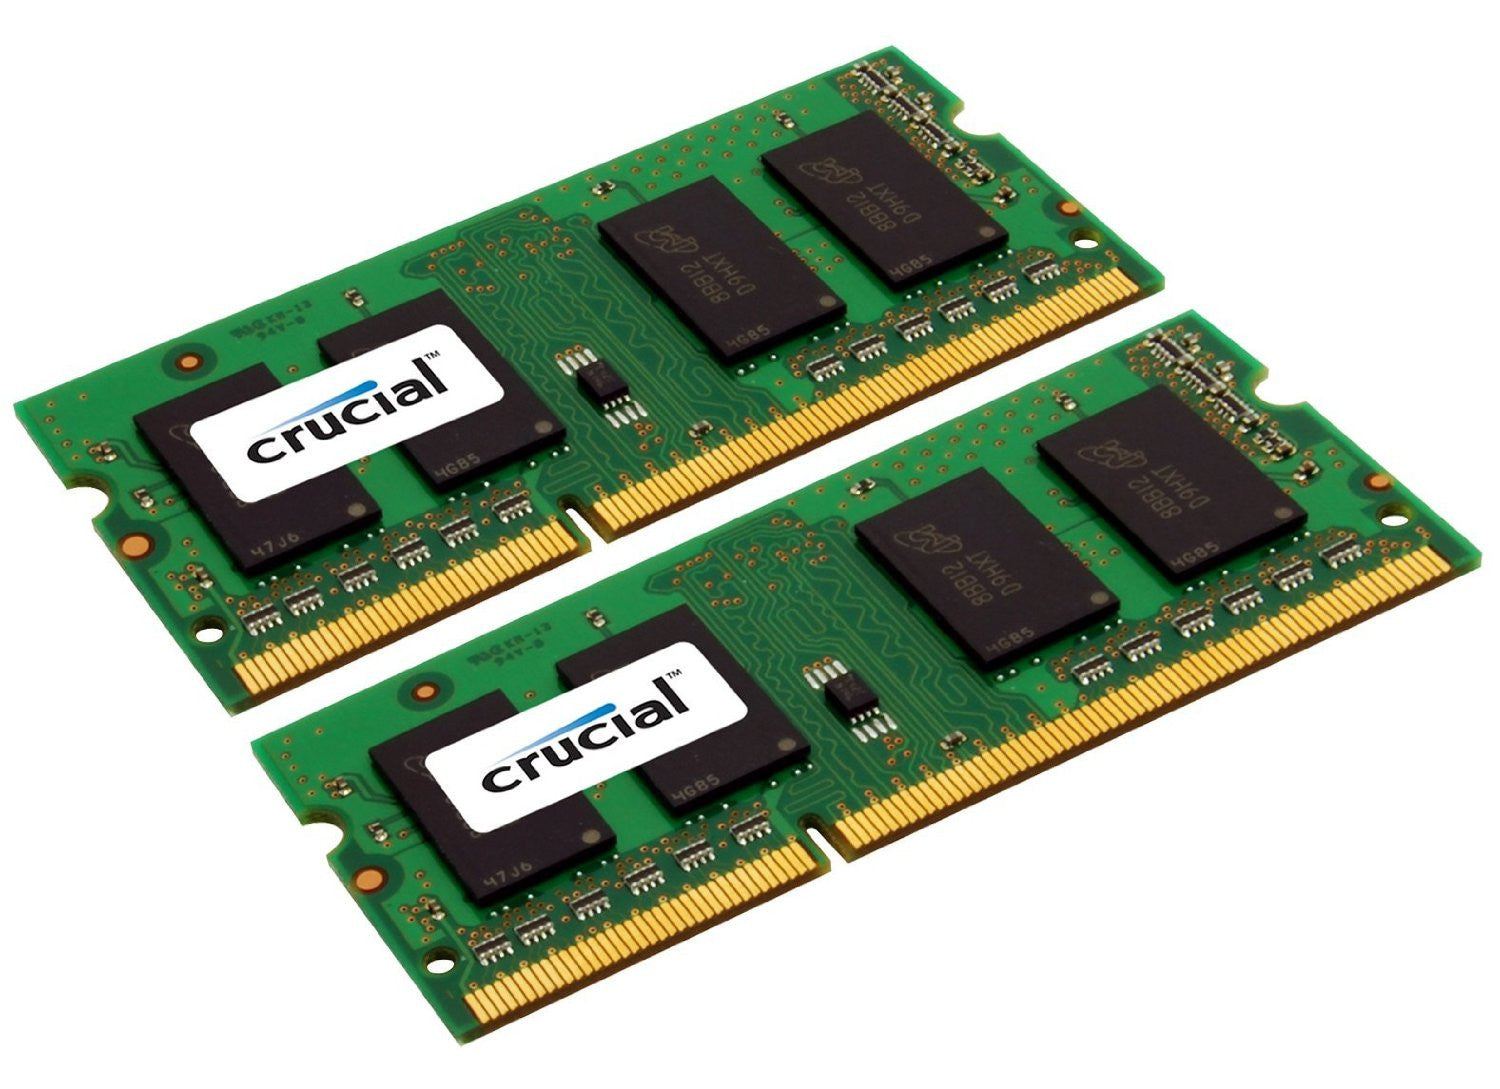 Crucial 16GB Kit (8GBx2) DDR3 1600 MT/s (PC3-12800) 204-Pin Memory Modules